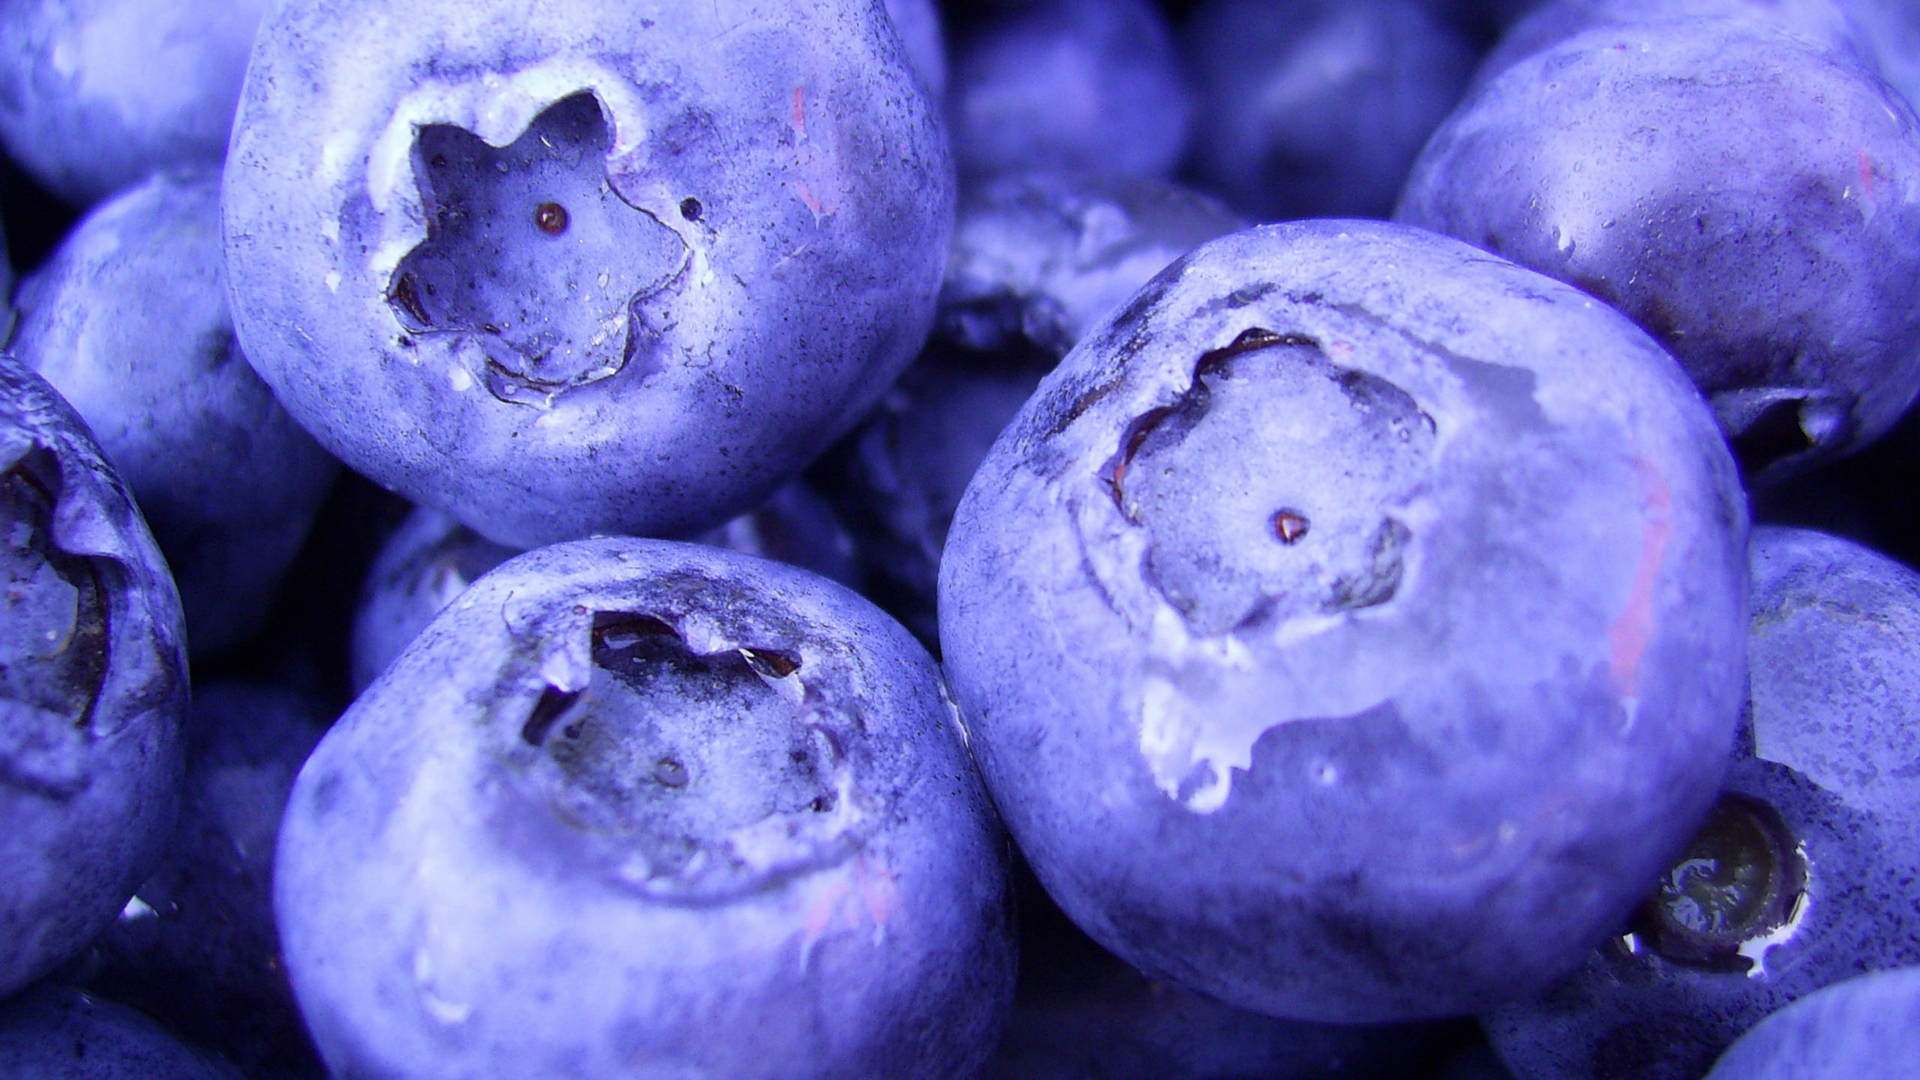 ... Image Food, berries, blueberries, close-up, food, berries, blueberry ...